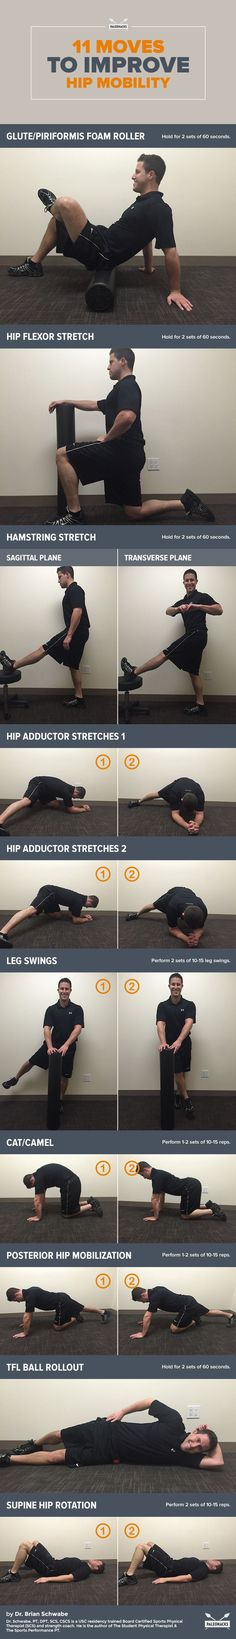 If you think hip flexibility is only important when you're doing Zumba, think again! The muscles around our hips are the basis for most of our entire body's mobility. For the full workout visit us at: http://paleo.co/HipMobilityMove #paleohacks #paleo